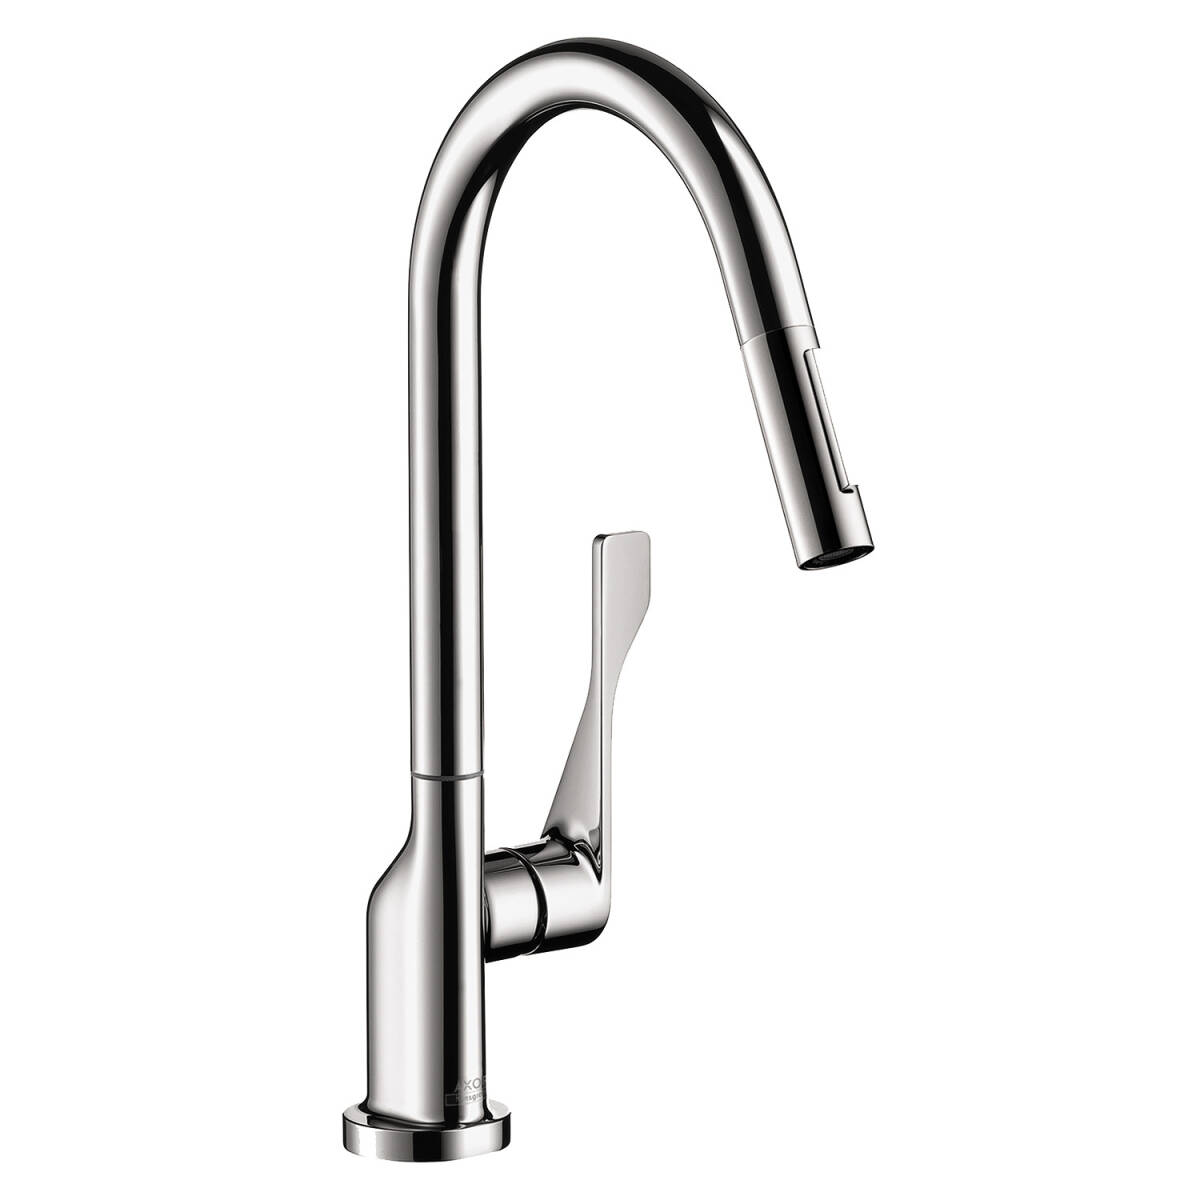 Single lever kitchen mixer 250 with pull-out spray 1.75 GPM, Chrome, 39835001